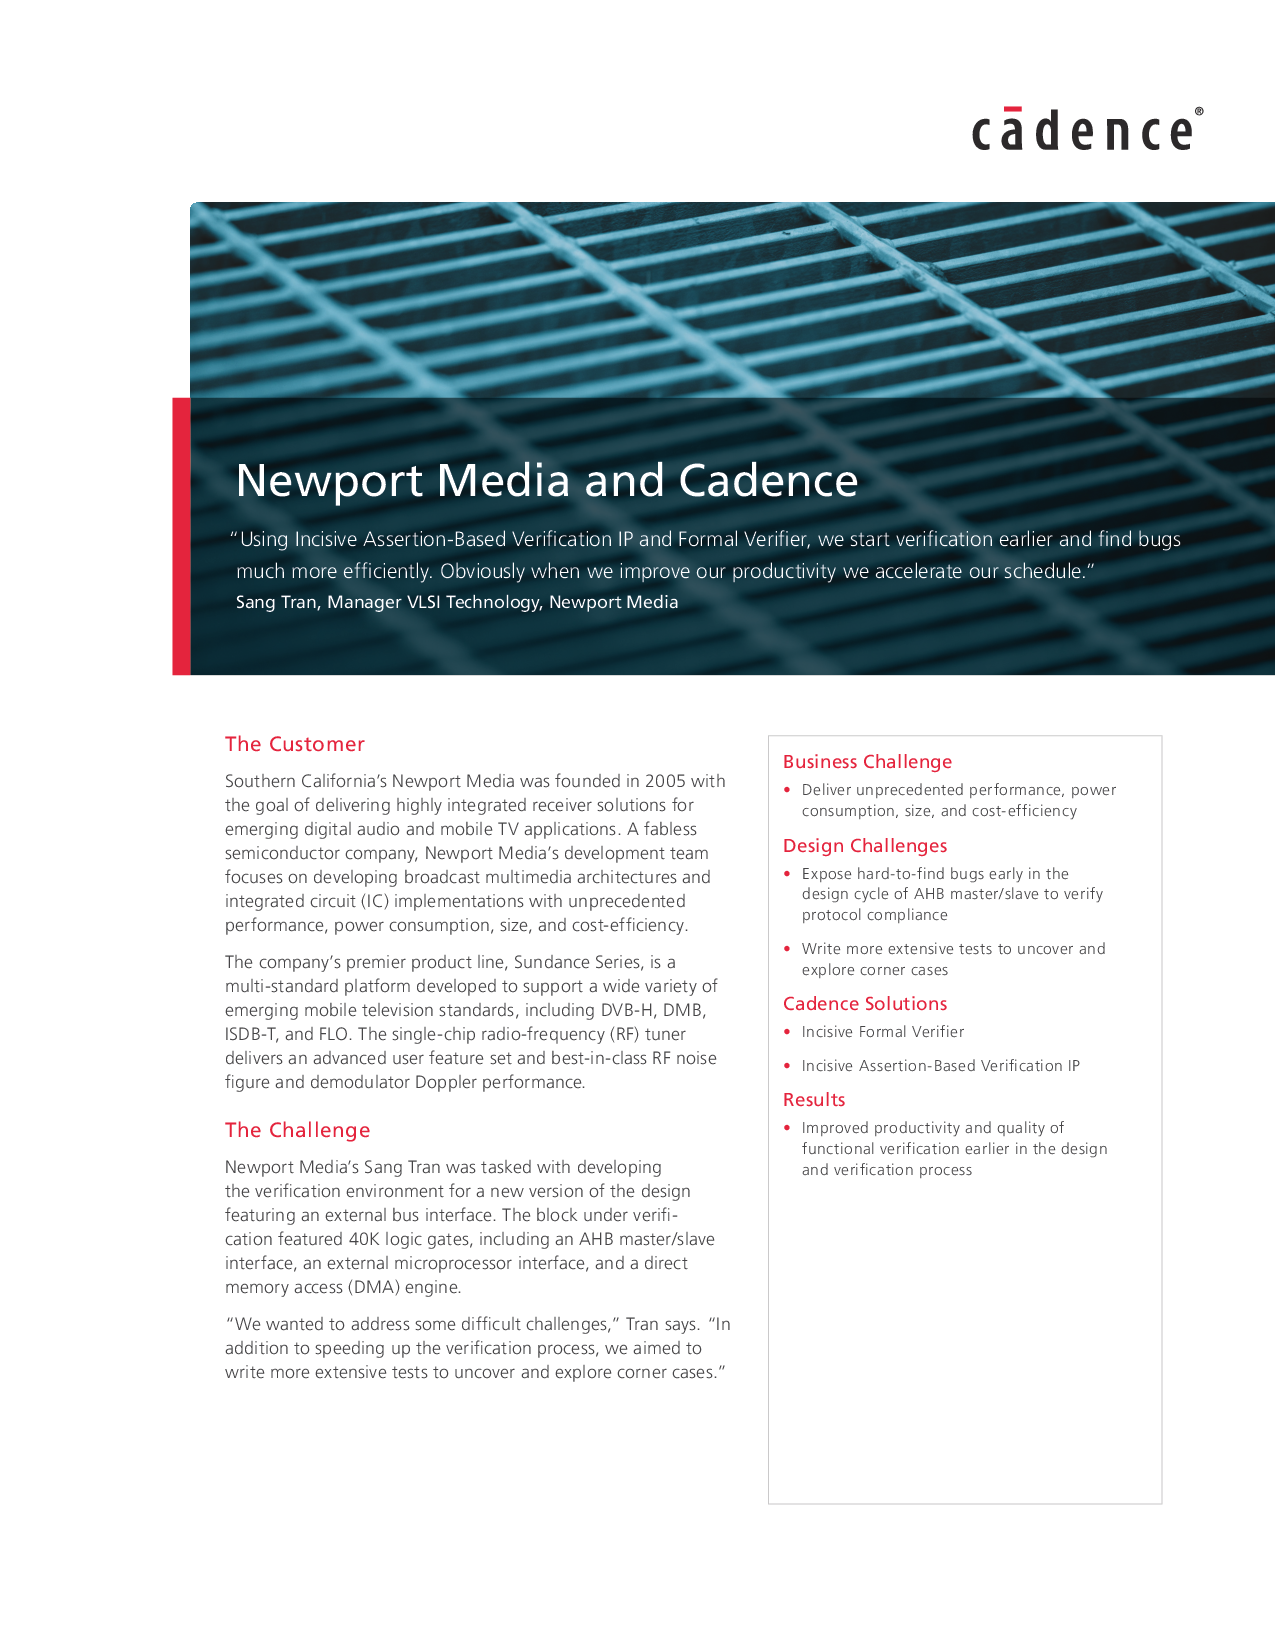 Newport Media And Cadence Integrated Circuit Looks Like A Bug 5278acd2 7788 4306 A0ae C1c07201cbbb